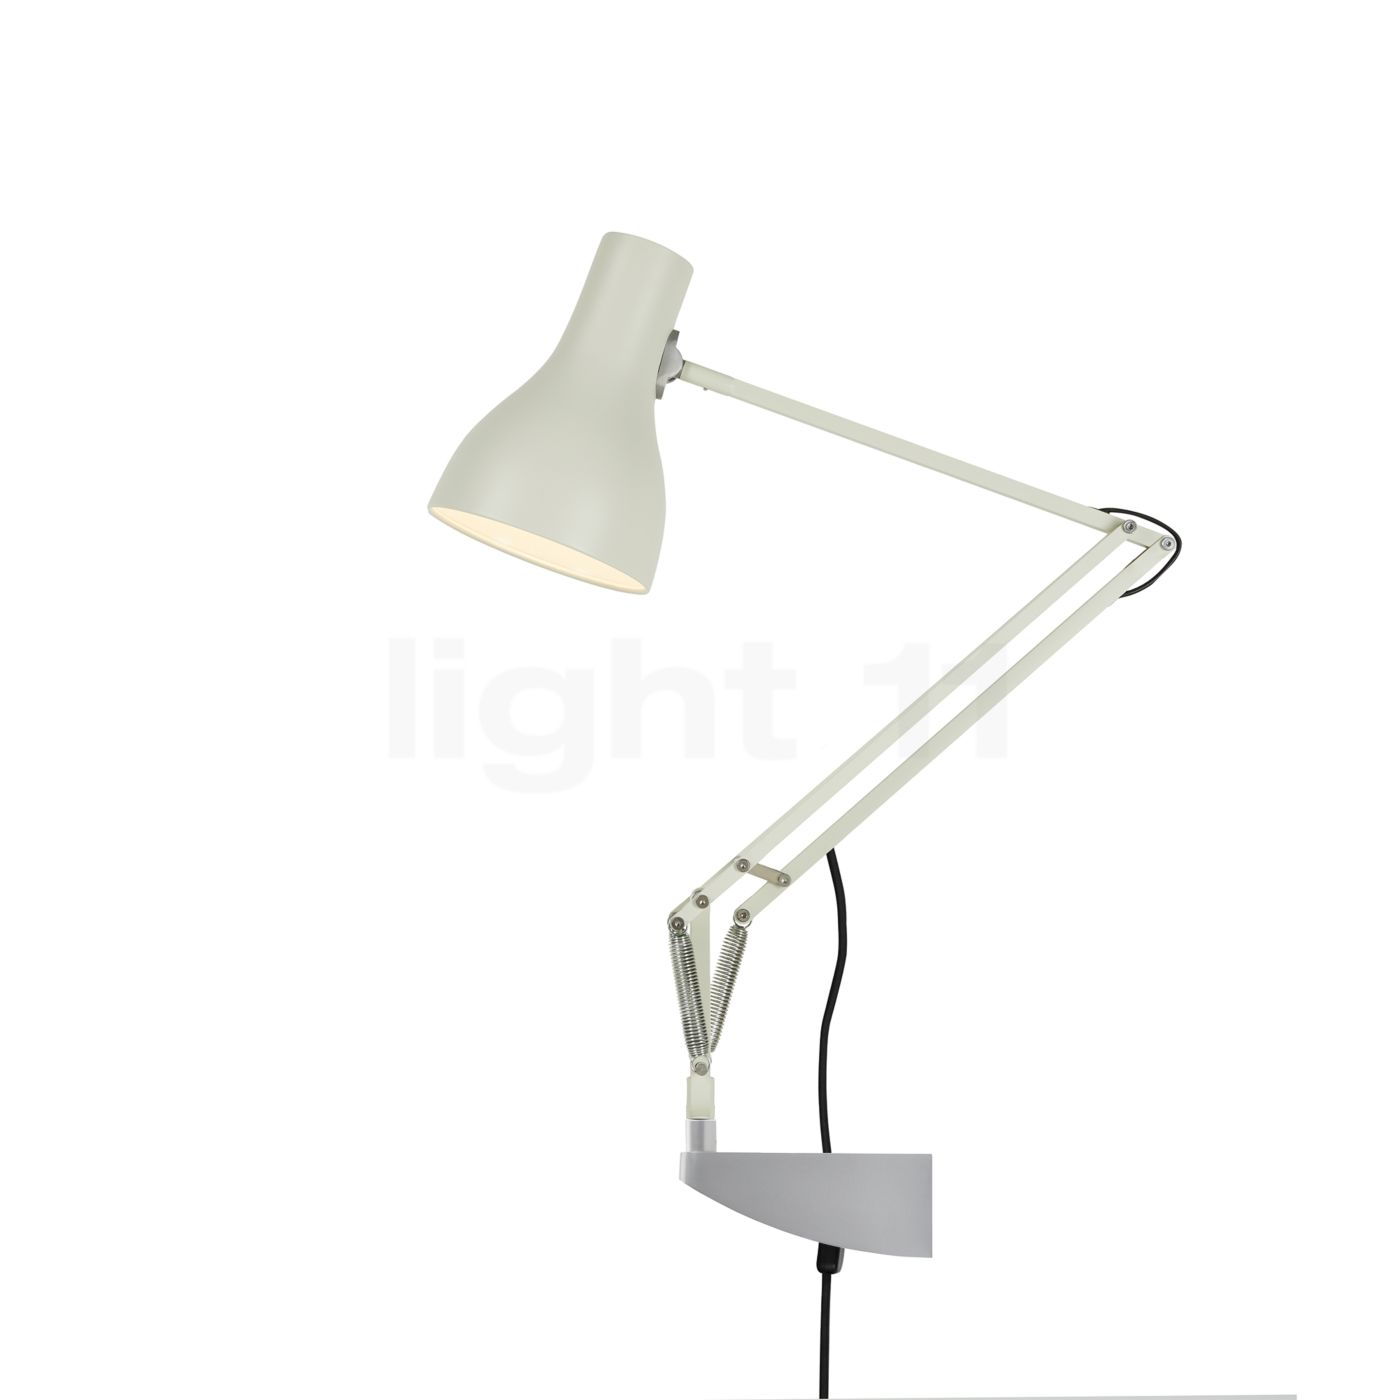 Anglepoise Type 75 Desk Lamp with Wall Bracket at light11.eu